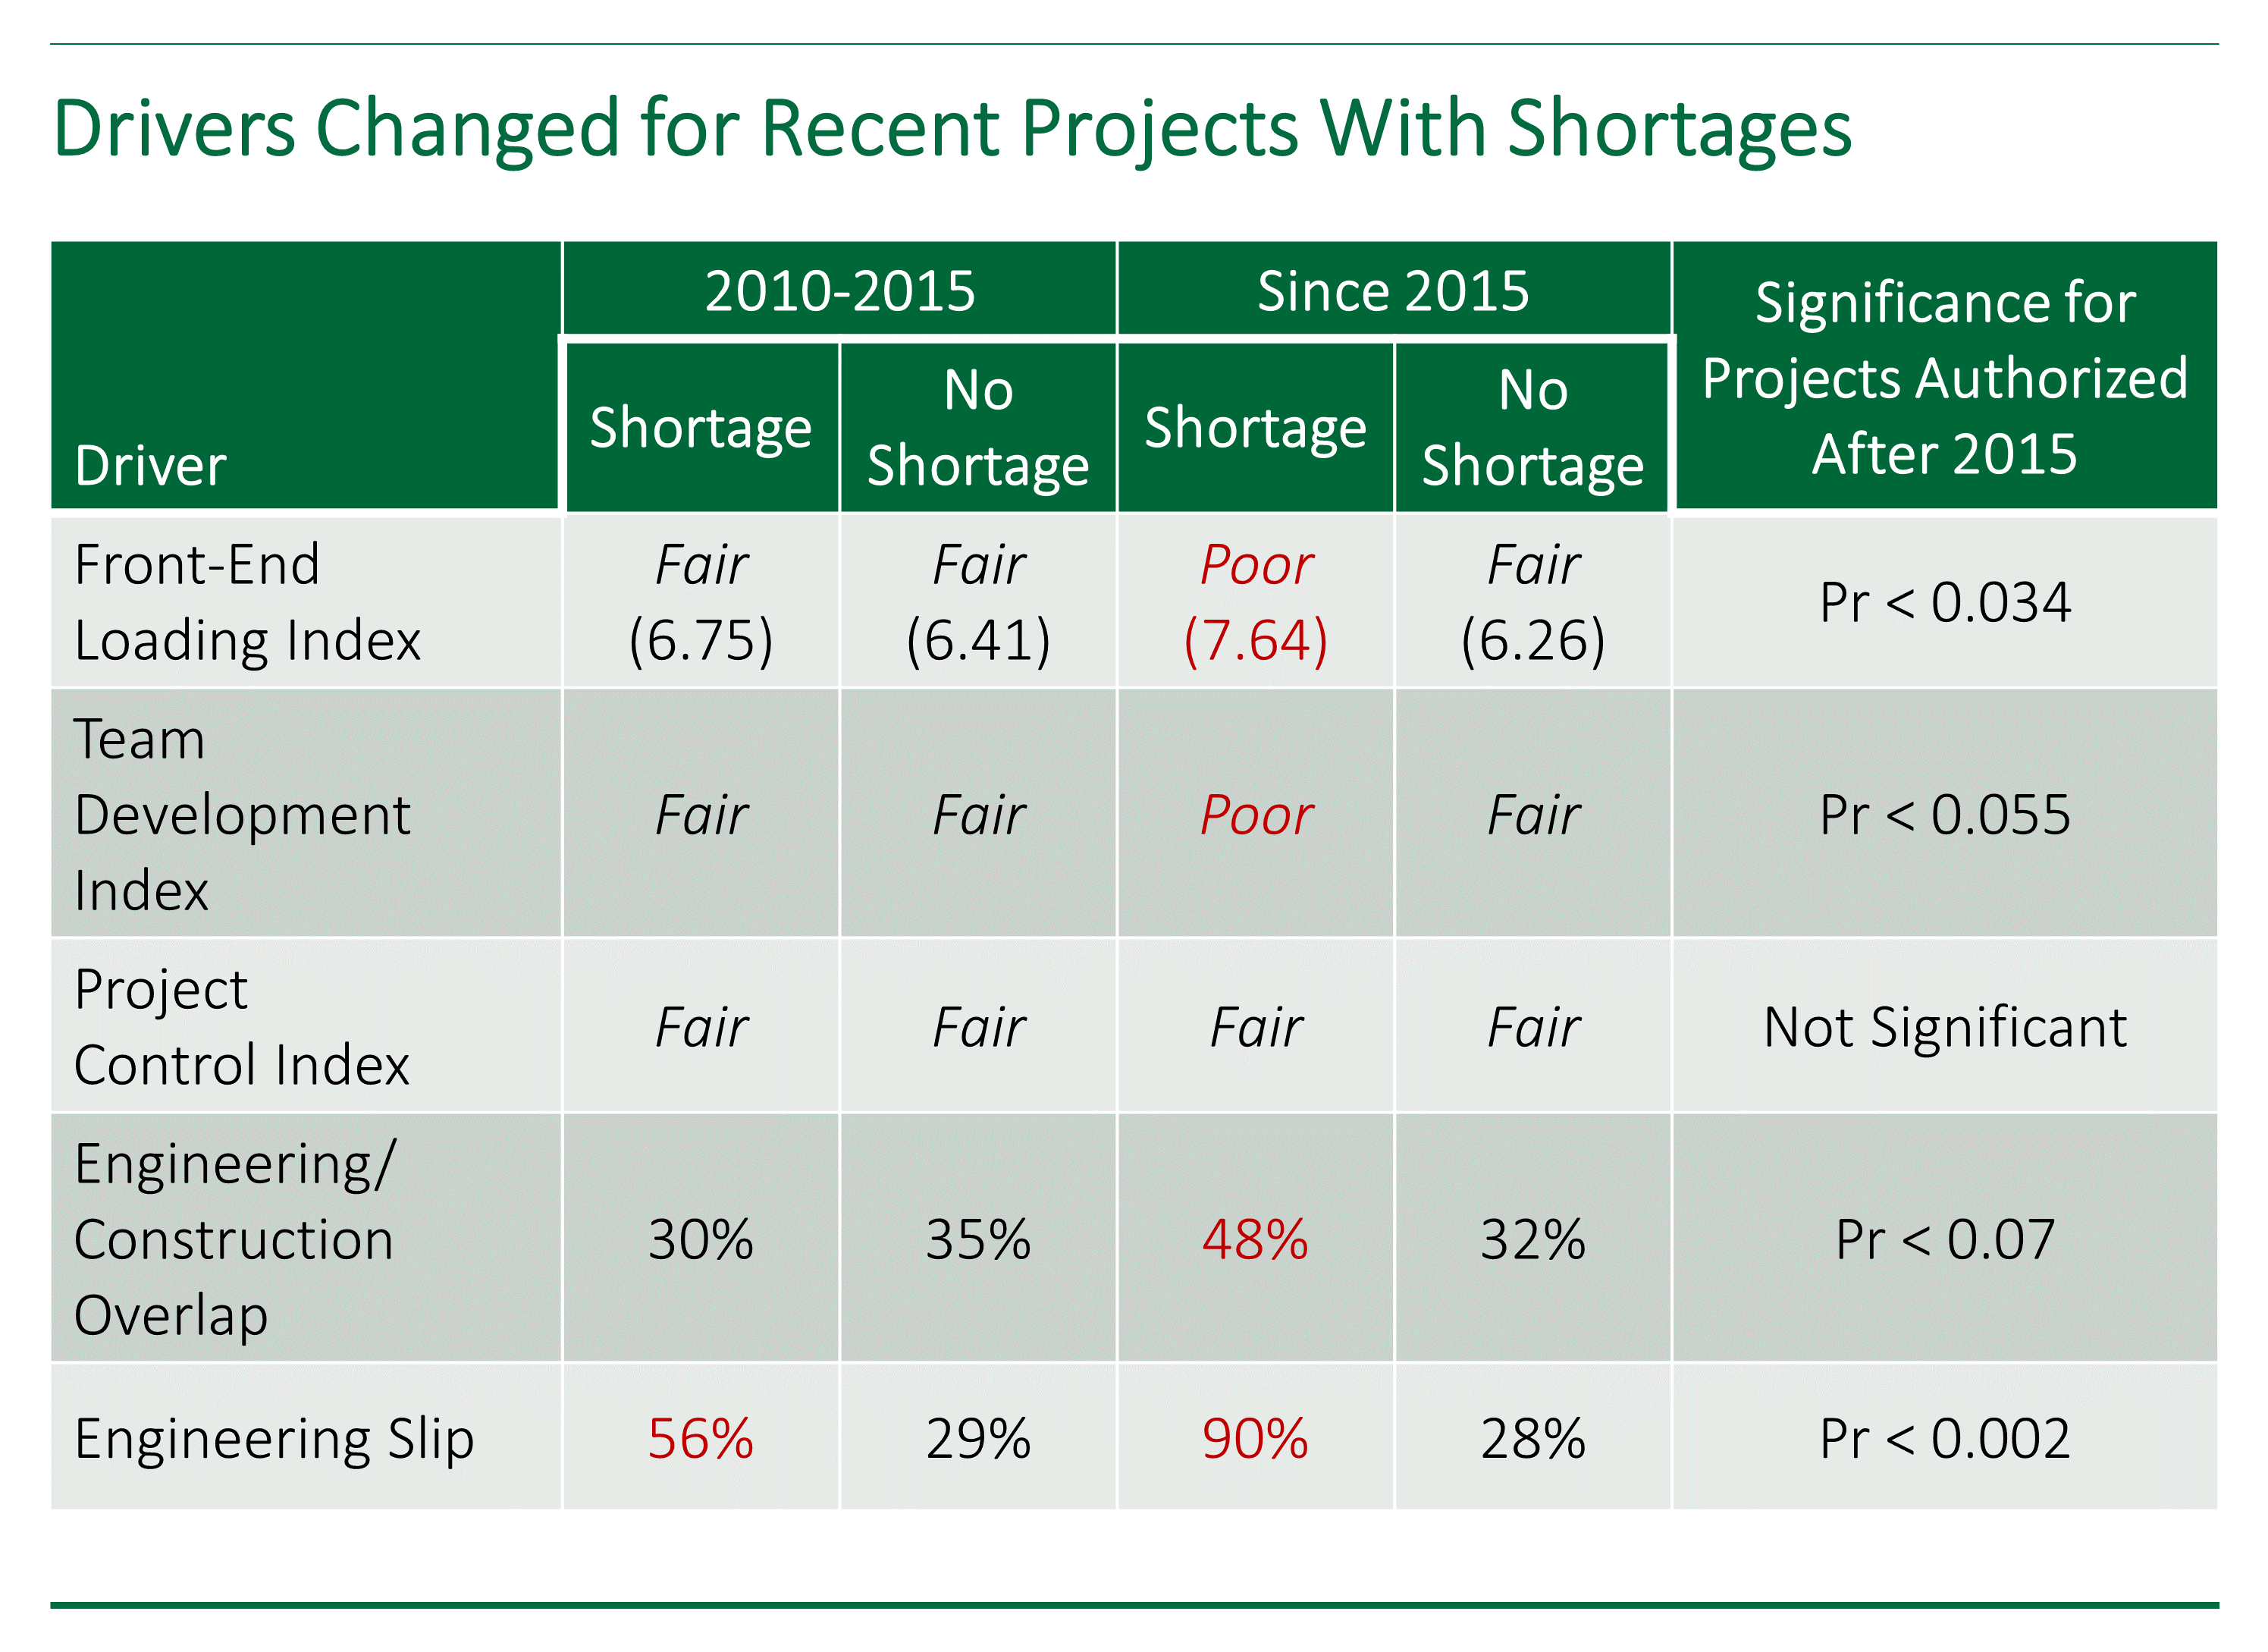 Table showing that project drivers have changed for recent capital projects with construction shortages.